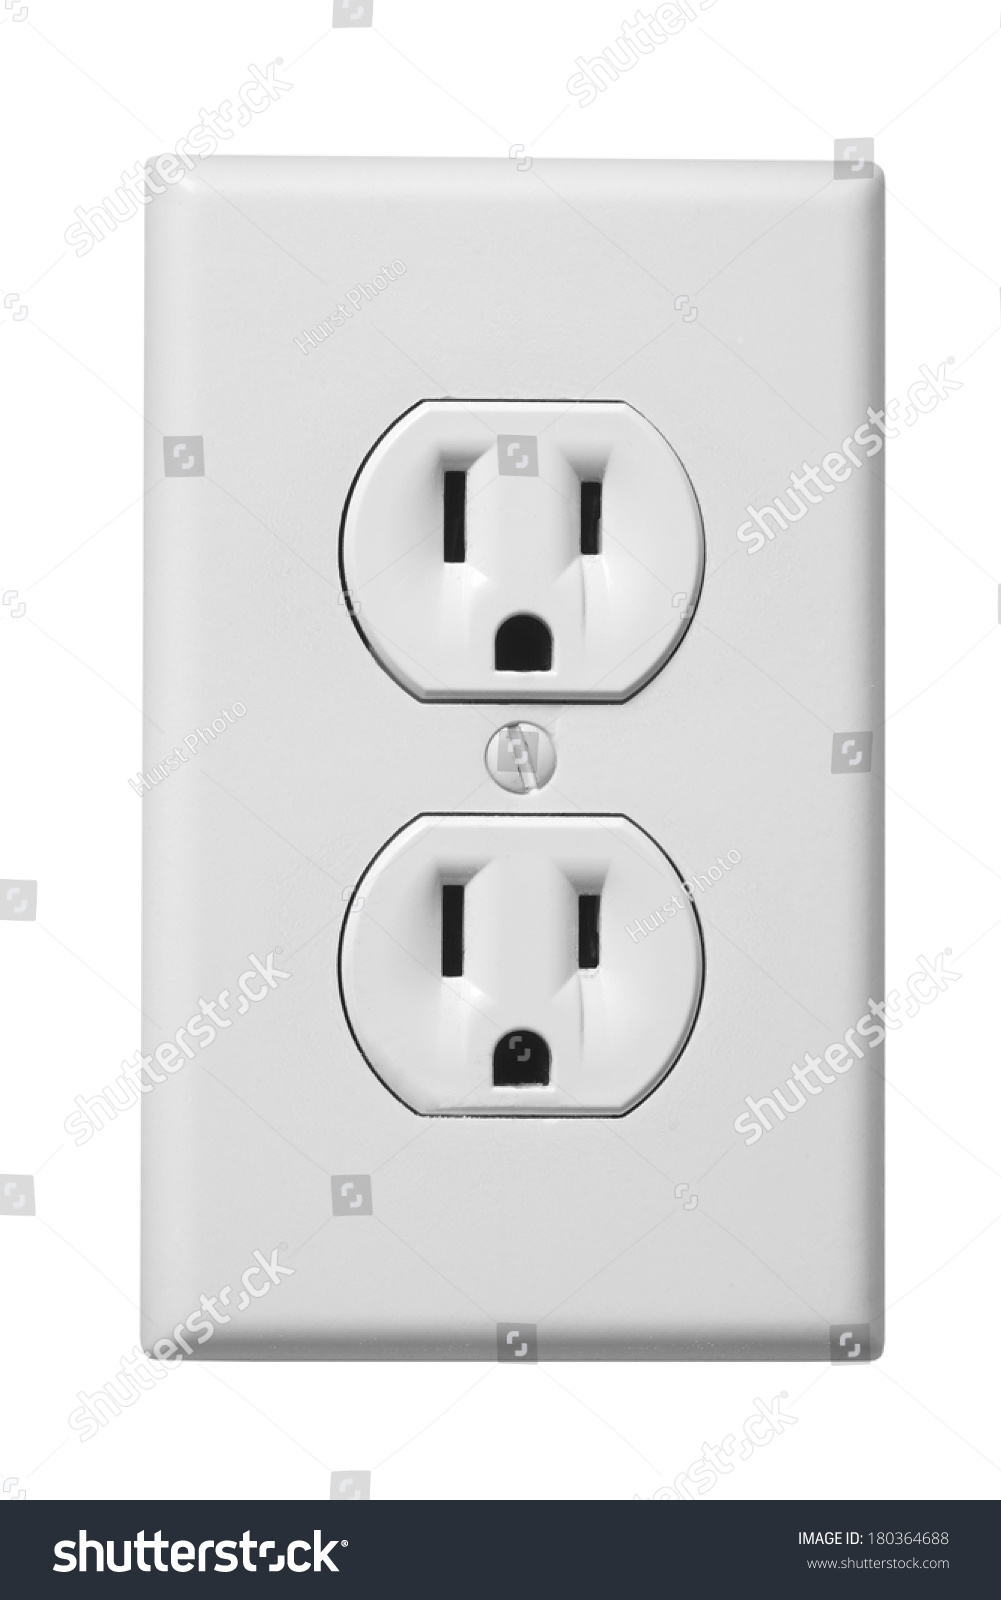 Outlet Faceplate White Electrical Outlet Faceplate On White Stock Photo 180364688